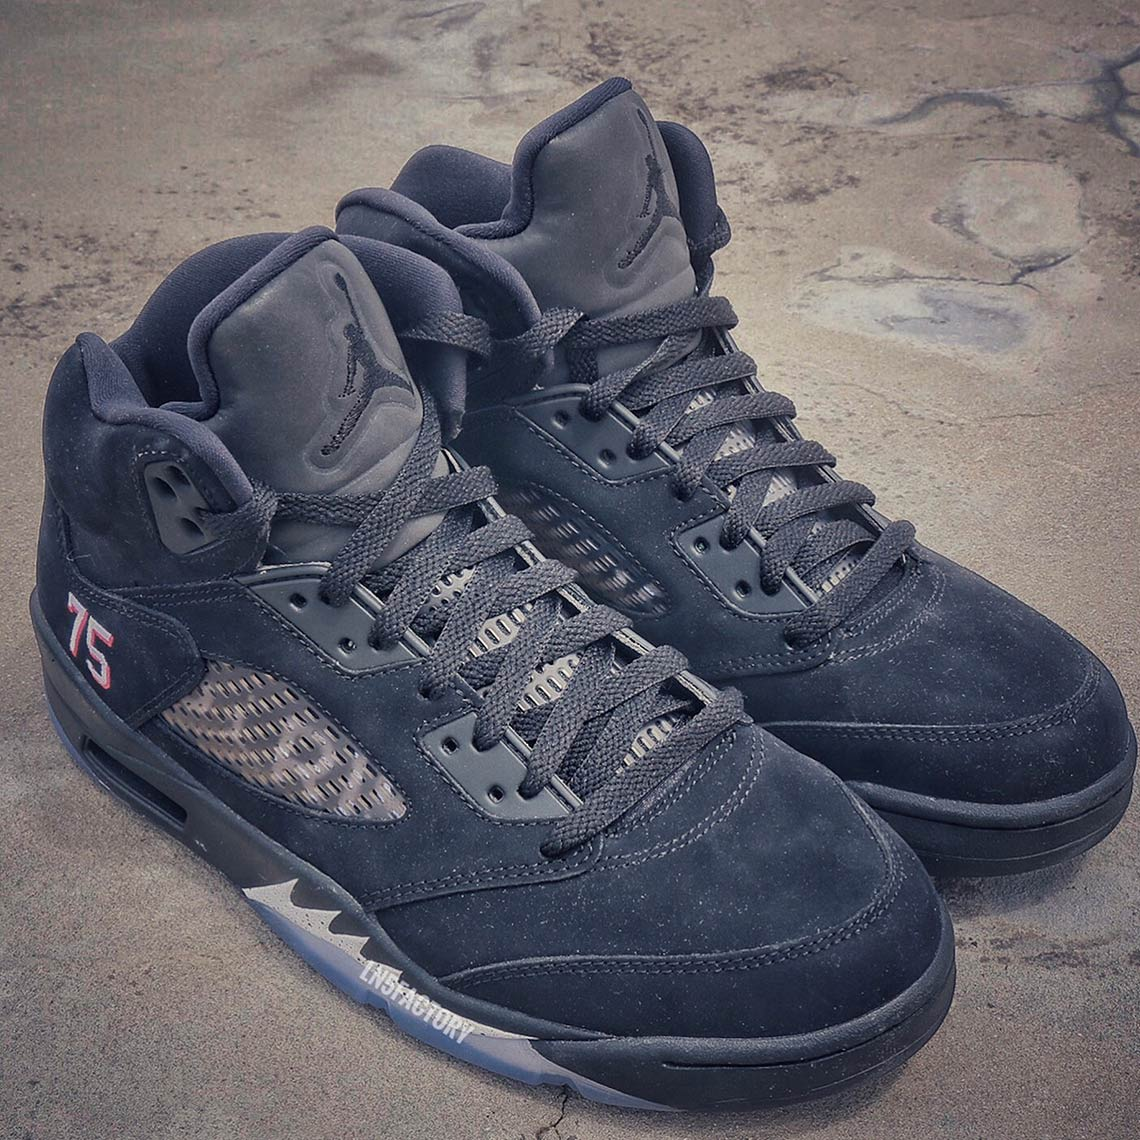 a222fdaea7d There's currently no official release date for the PSG 5s yet, but look for  them to roll out alongside Jordan Brand's other international-inspired retro  ...